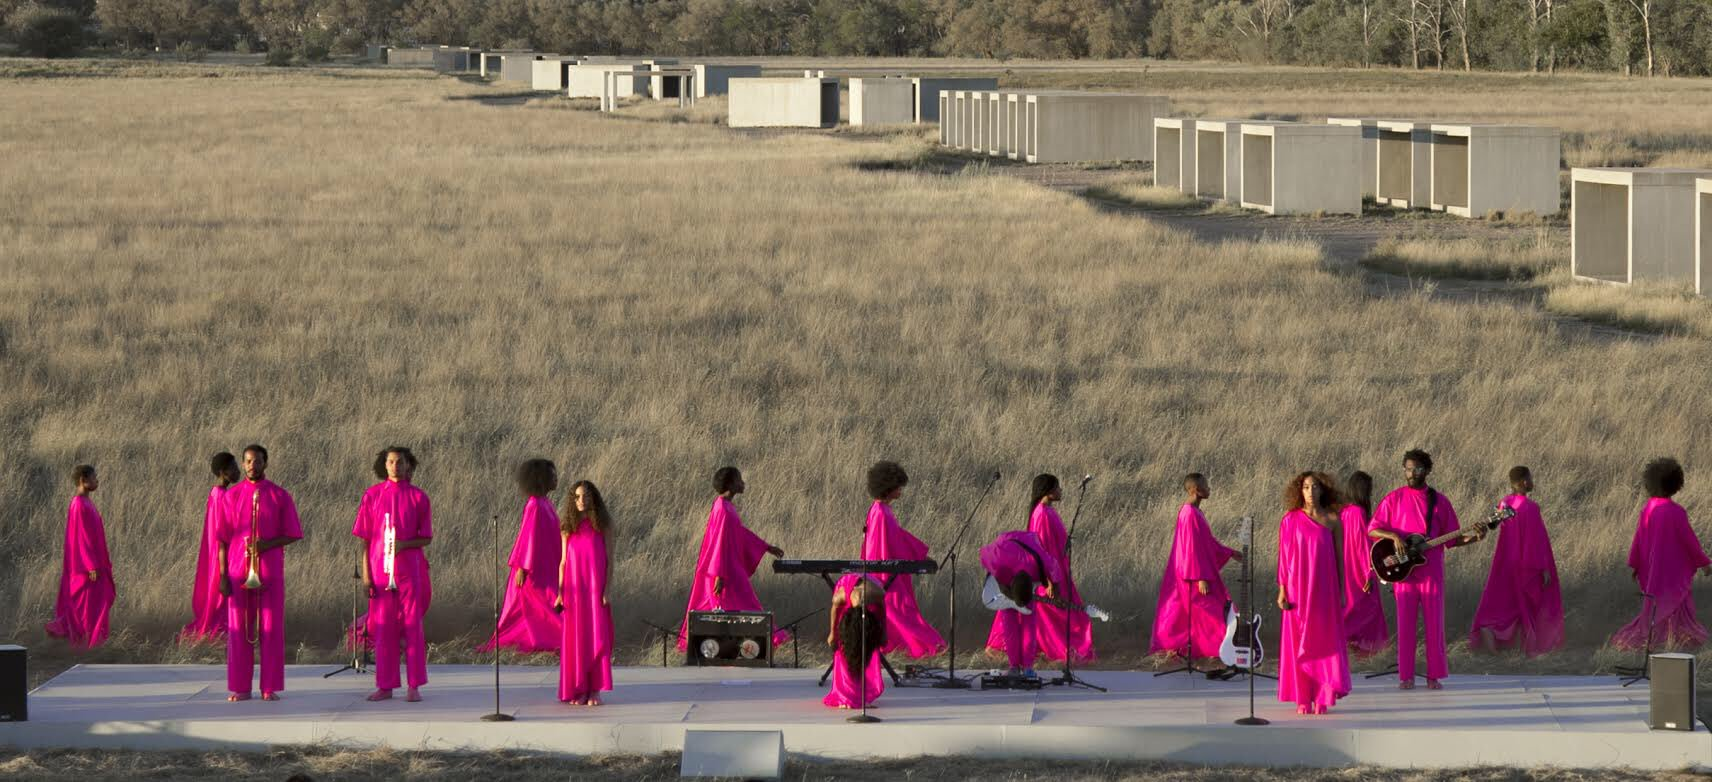 Scales (2017) performance piece at @ChinatiFndn @juddfoundation  Marfa, Texas https://t.co/kJpZcH5tq6